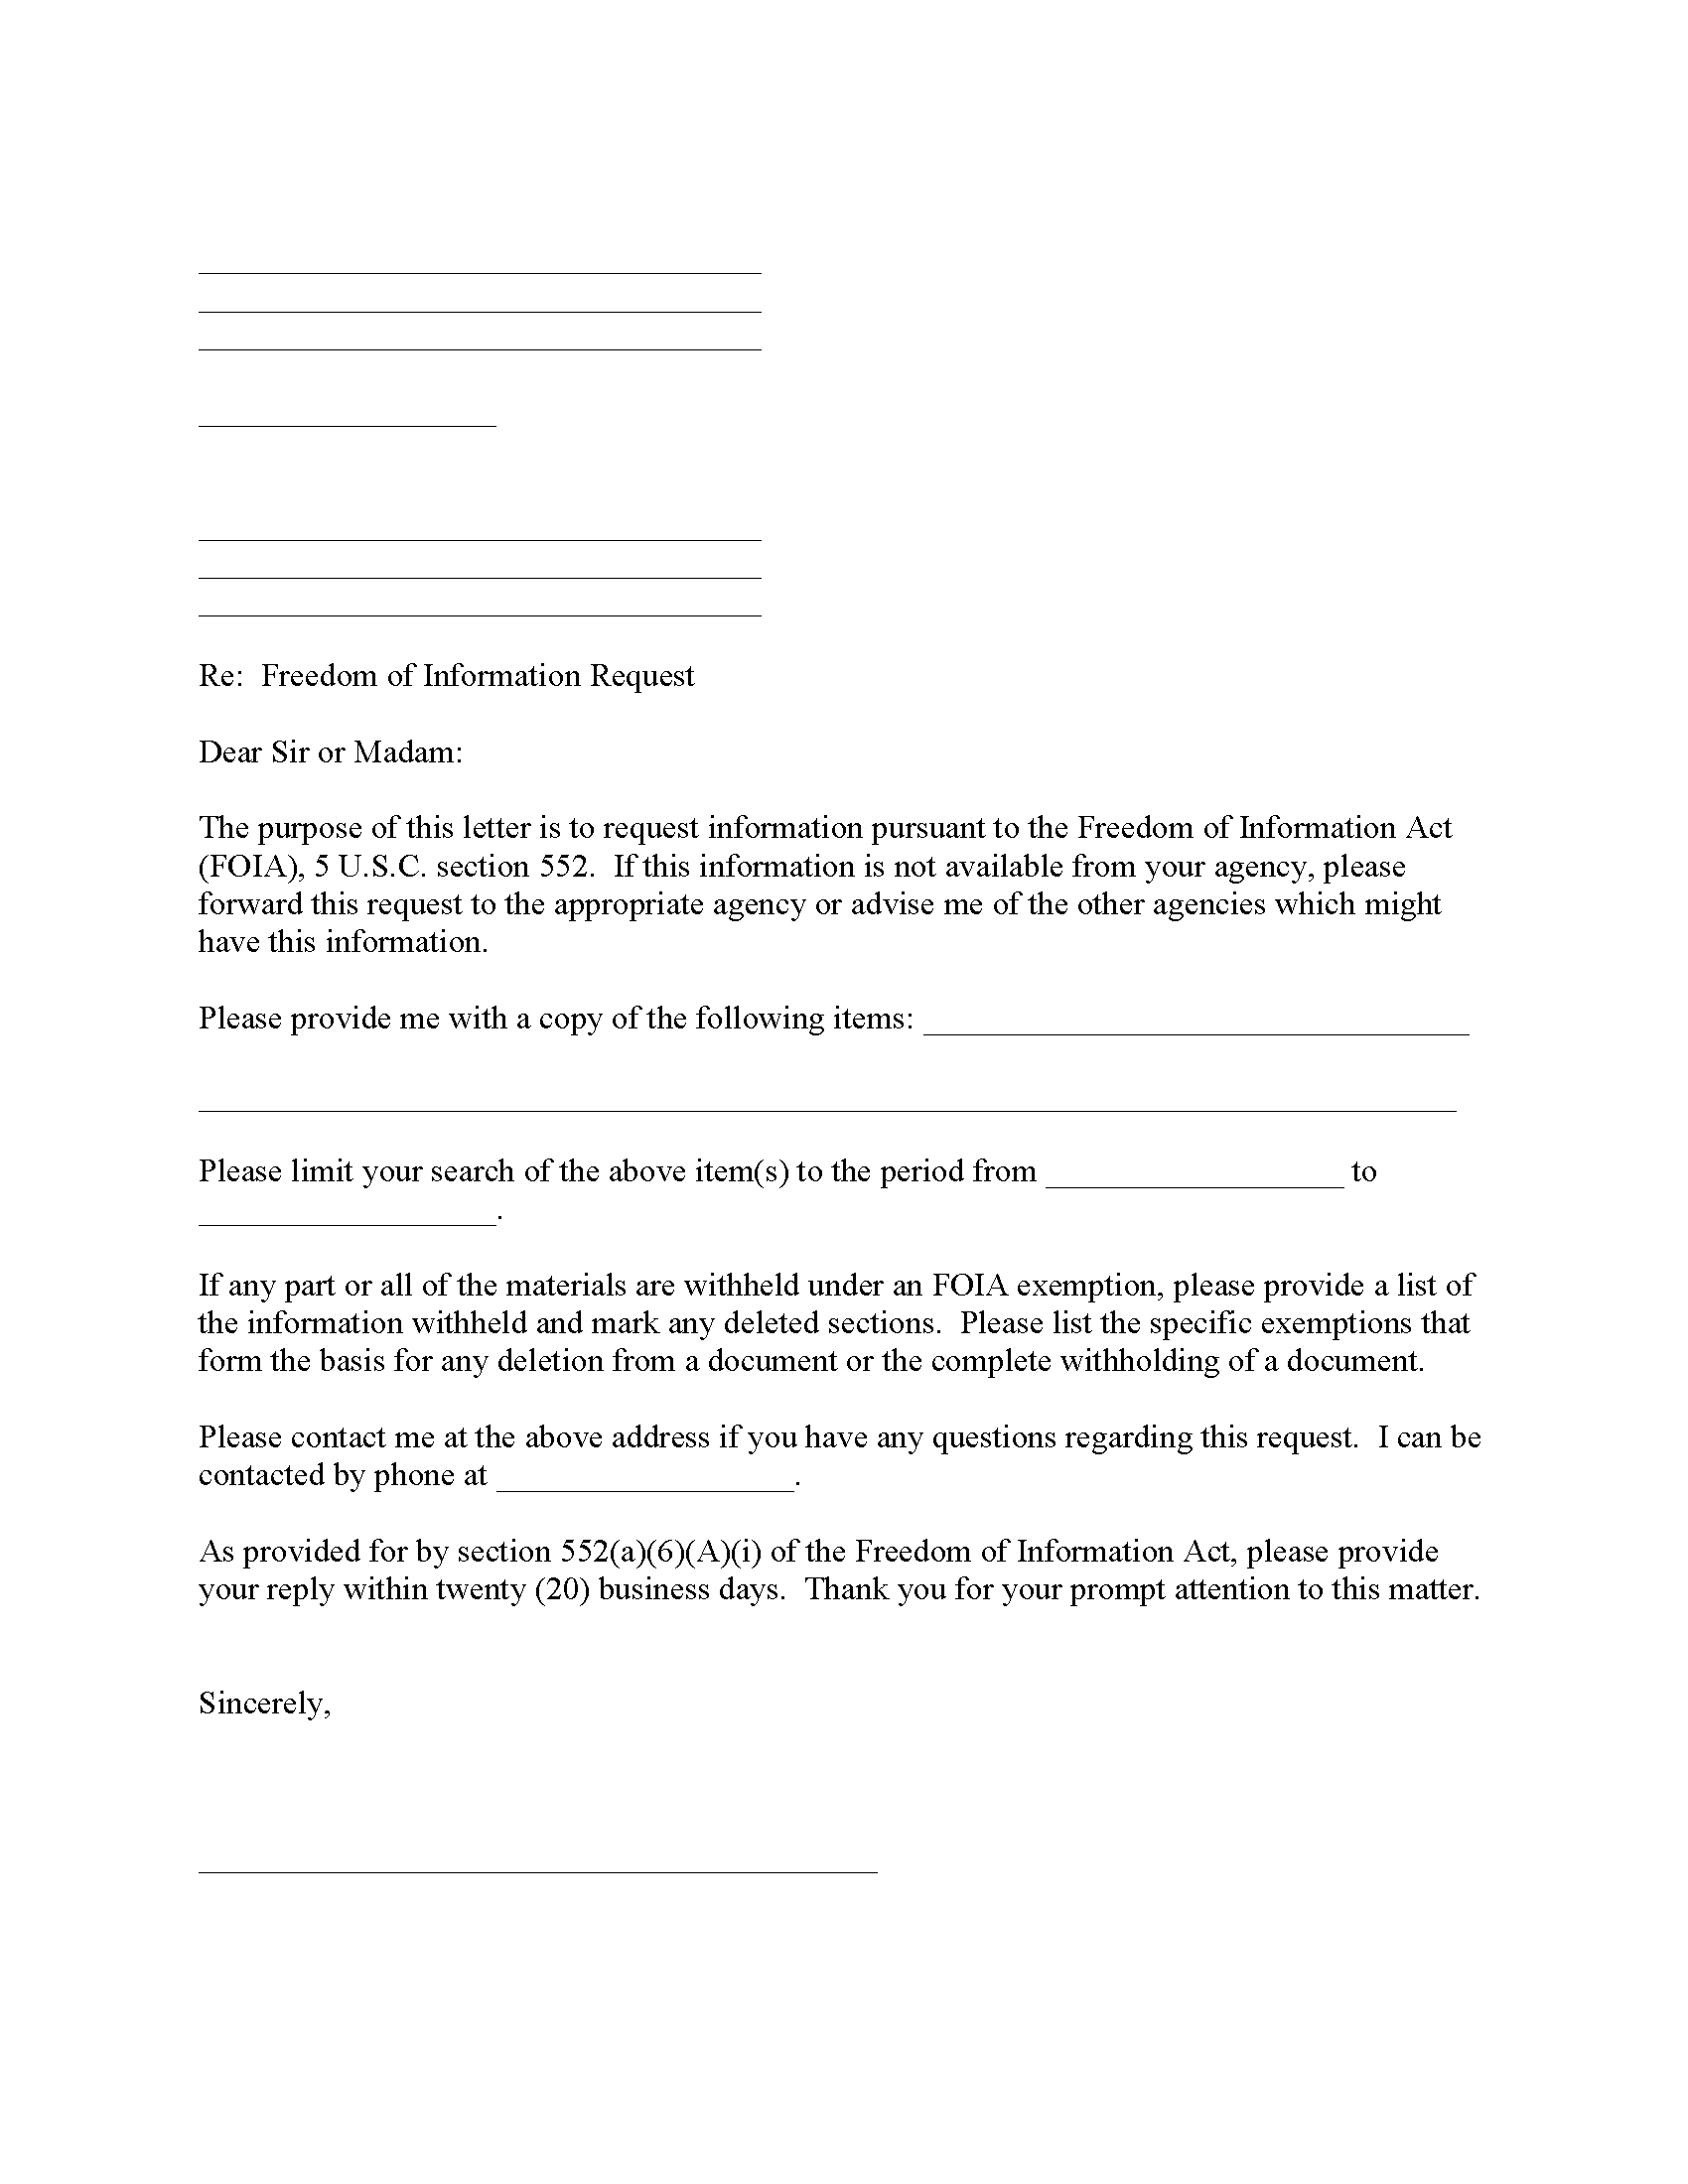 Freedom of Information Records Request Form